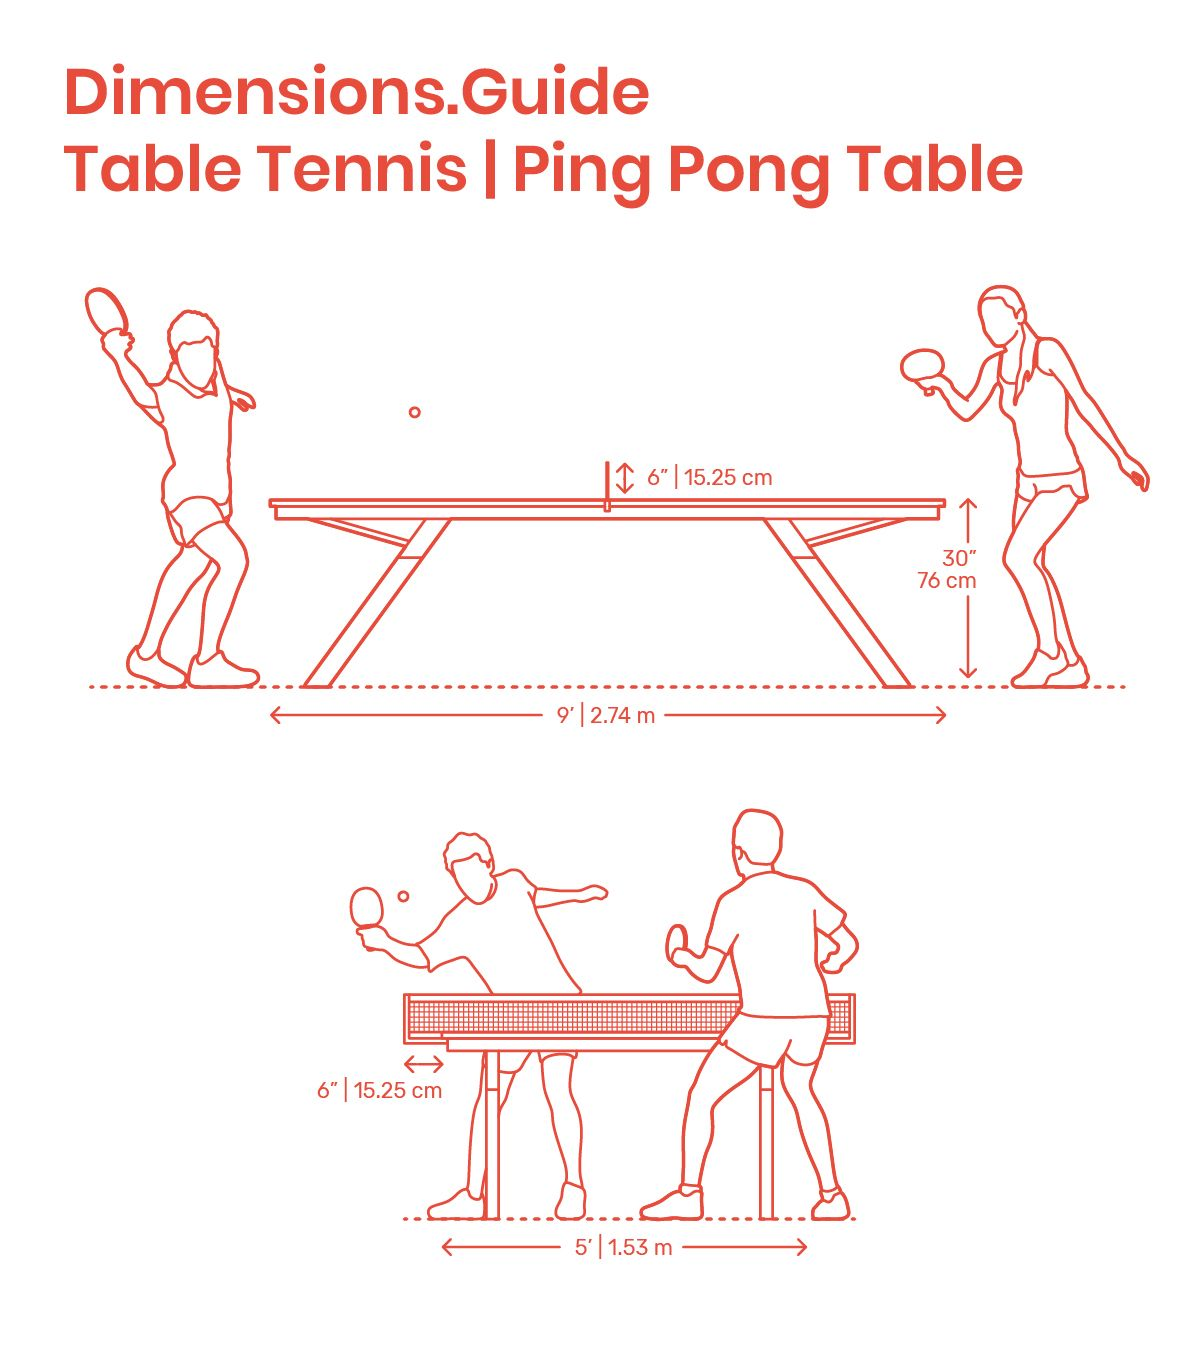 Table Tennis Ping Pong Tables Table Tennis Table Tennis Room Ping Pong